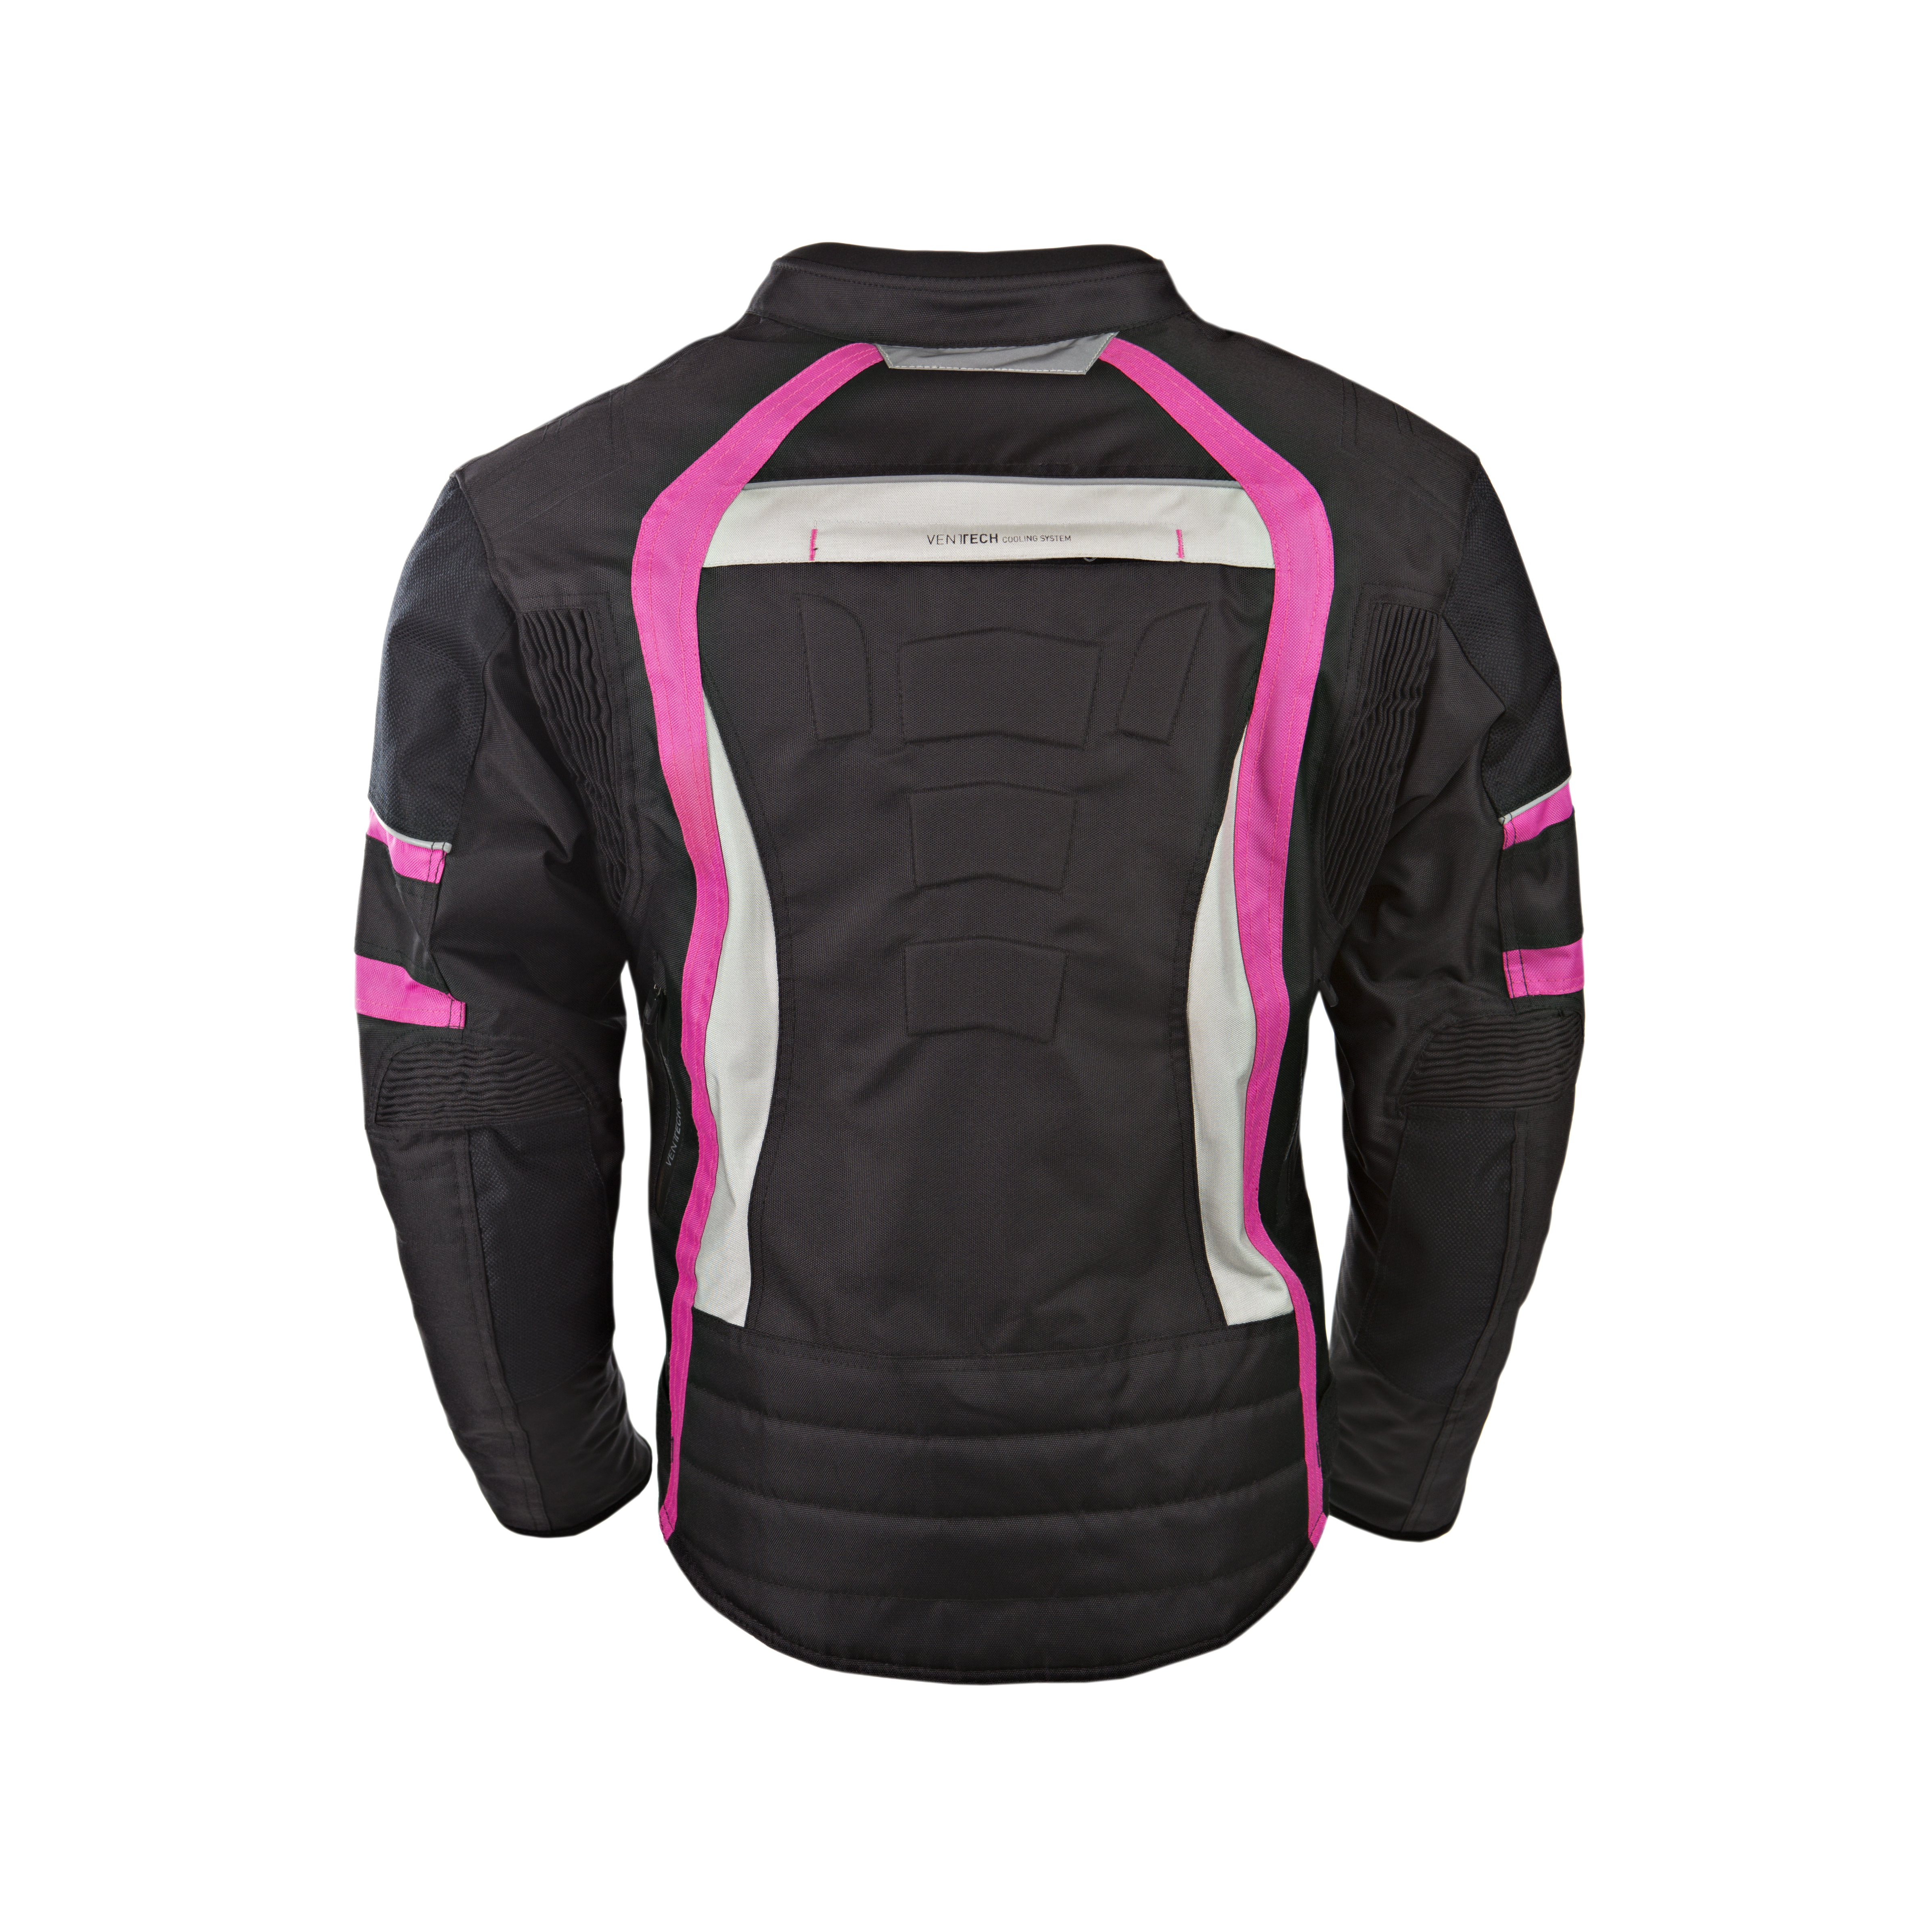 Blouson de protection blind/é pour moto En textile imperm/éable scooter Rose